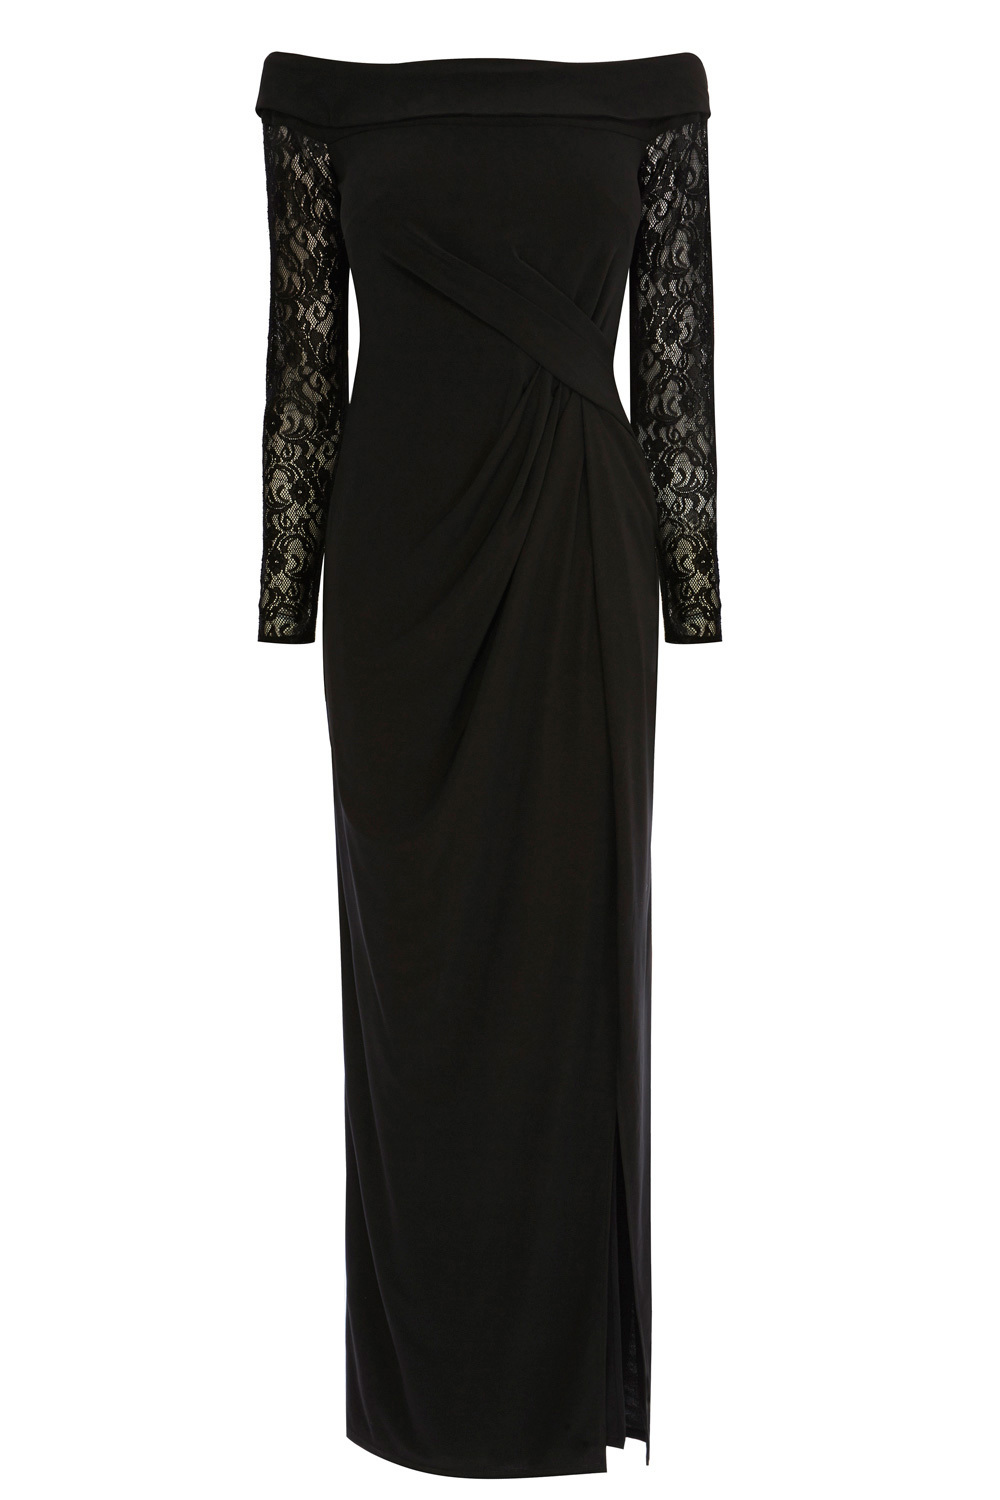 Esther Bardot Jersey Dress - neckline: off the shoulder; pattern: plain; style: maxi dress; predominant colour: black; occasions: evening; length: floor length; fit: body skimming; fibres: polyester/polyamide - stretch; sleeve length: long sleeve; sleeve style: standard; pattern type: fabric; texture group: jersey - stretchy/drapey; embellishment: lace; season: s/s 2016; wardrobe: event